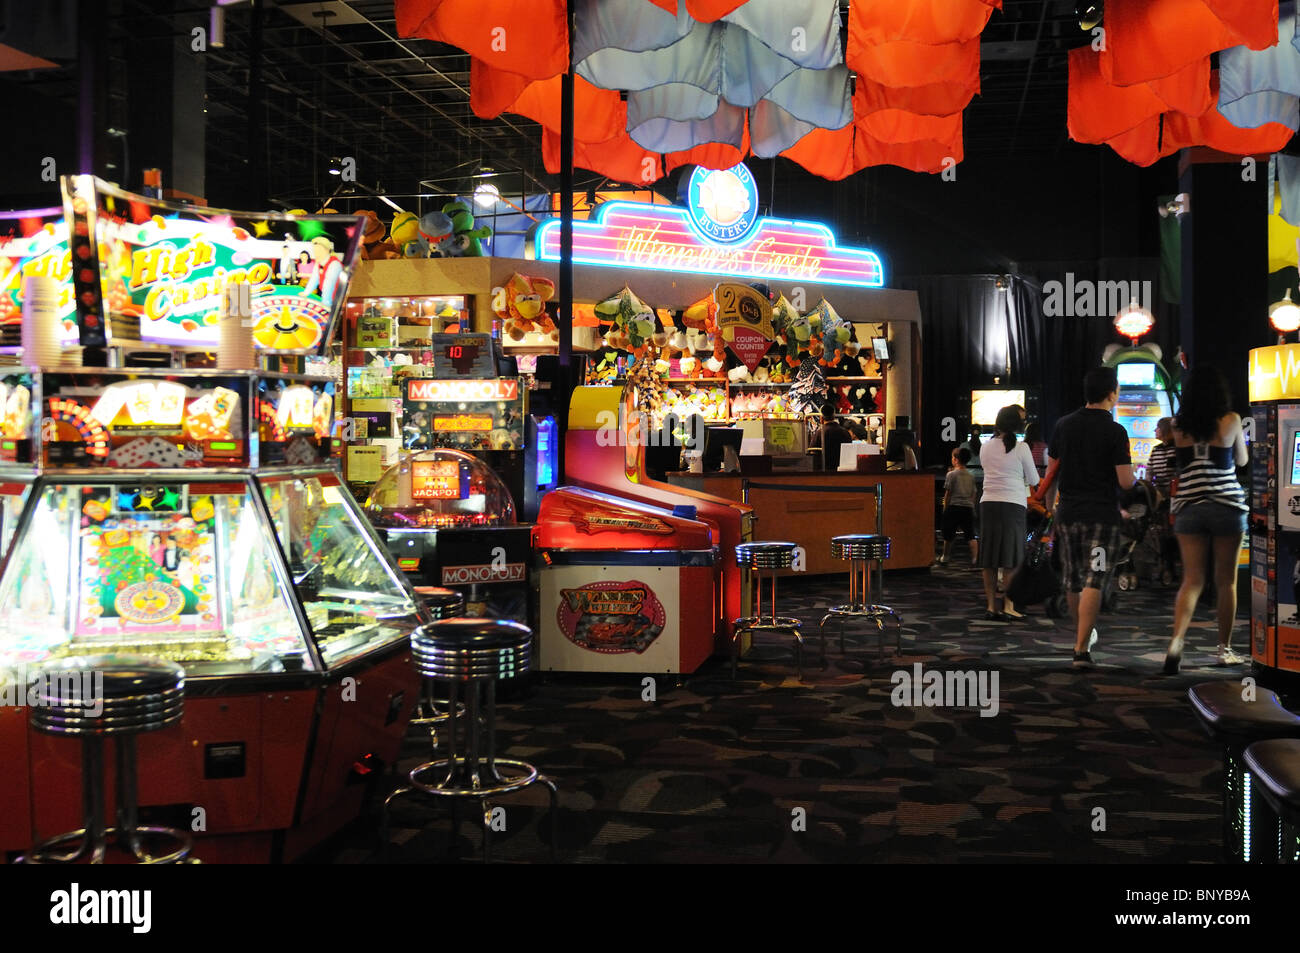 A video arcade in midtown Manhattan. - Stock Image